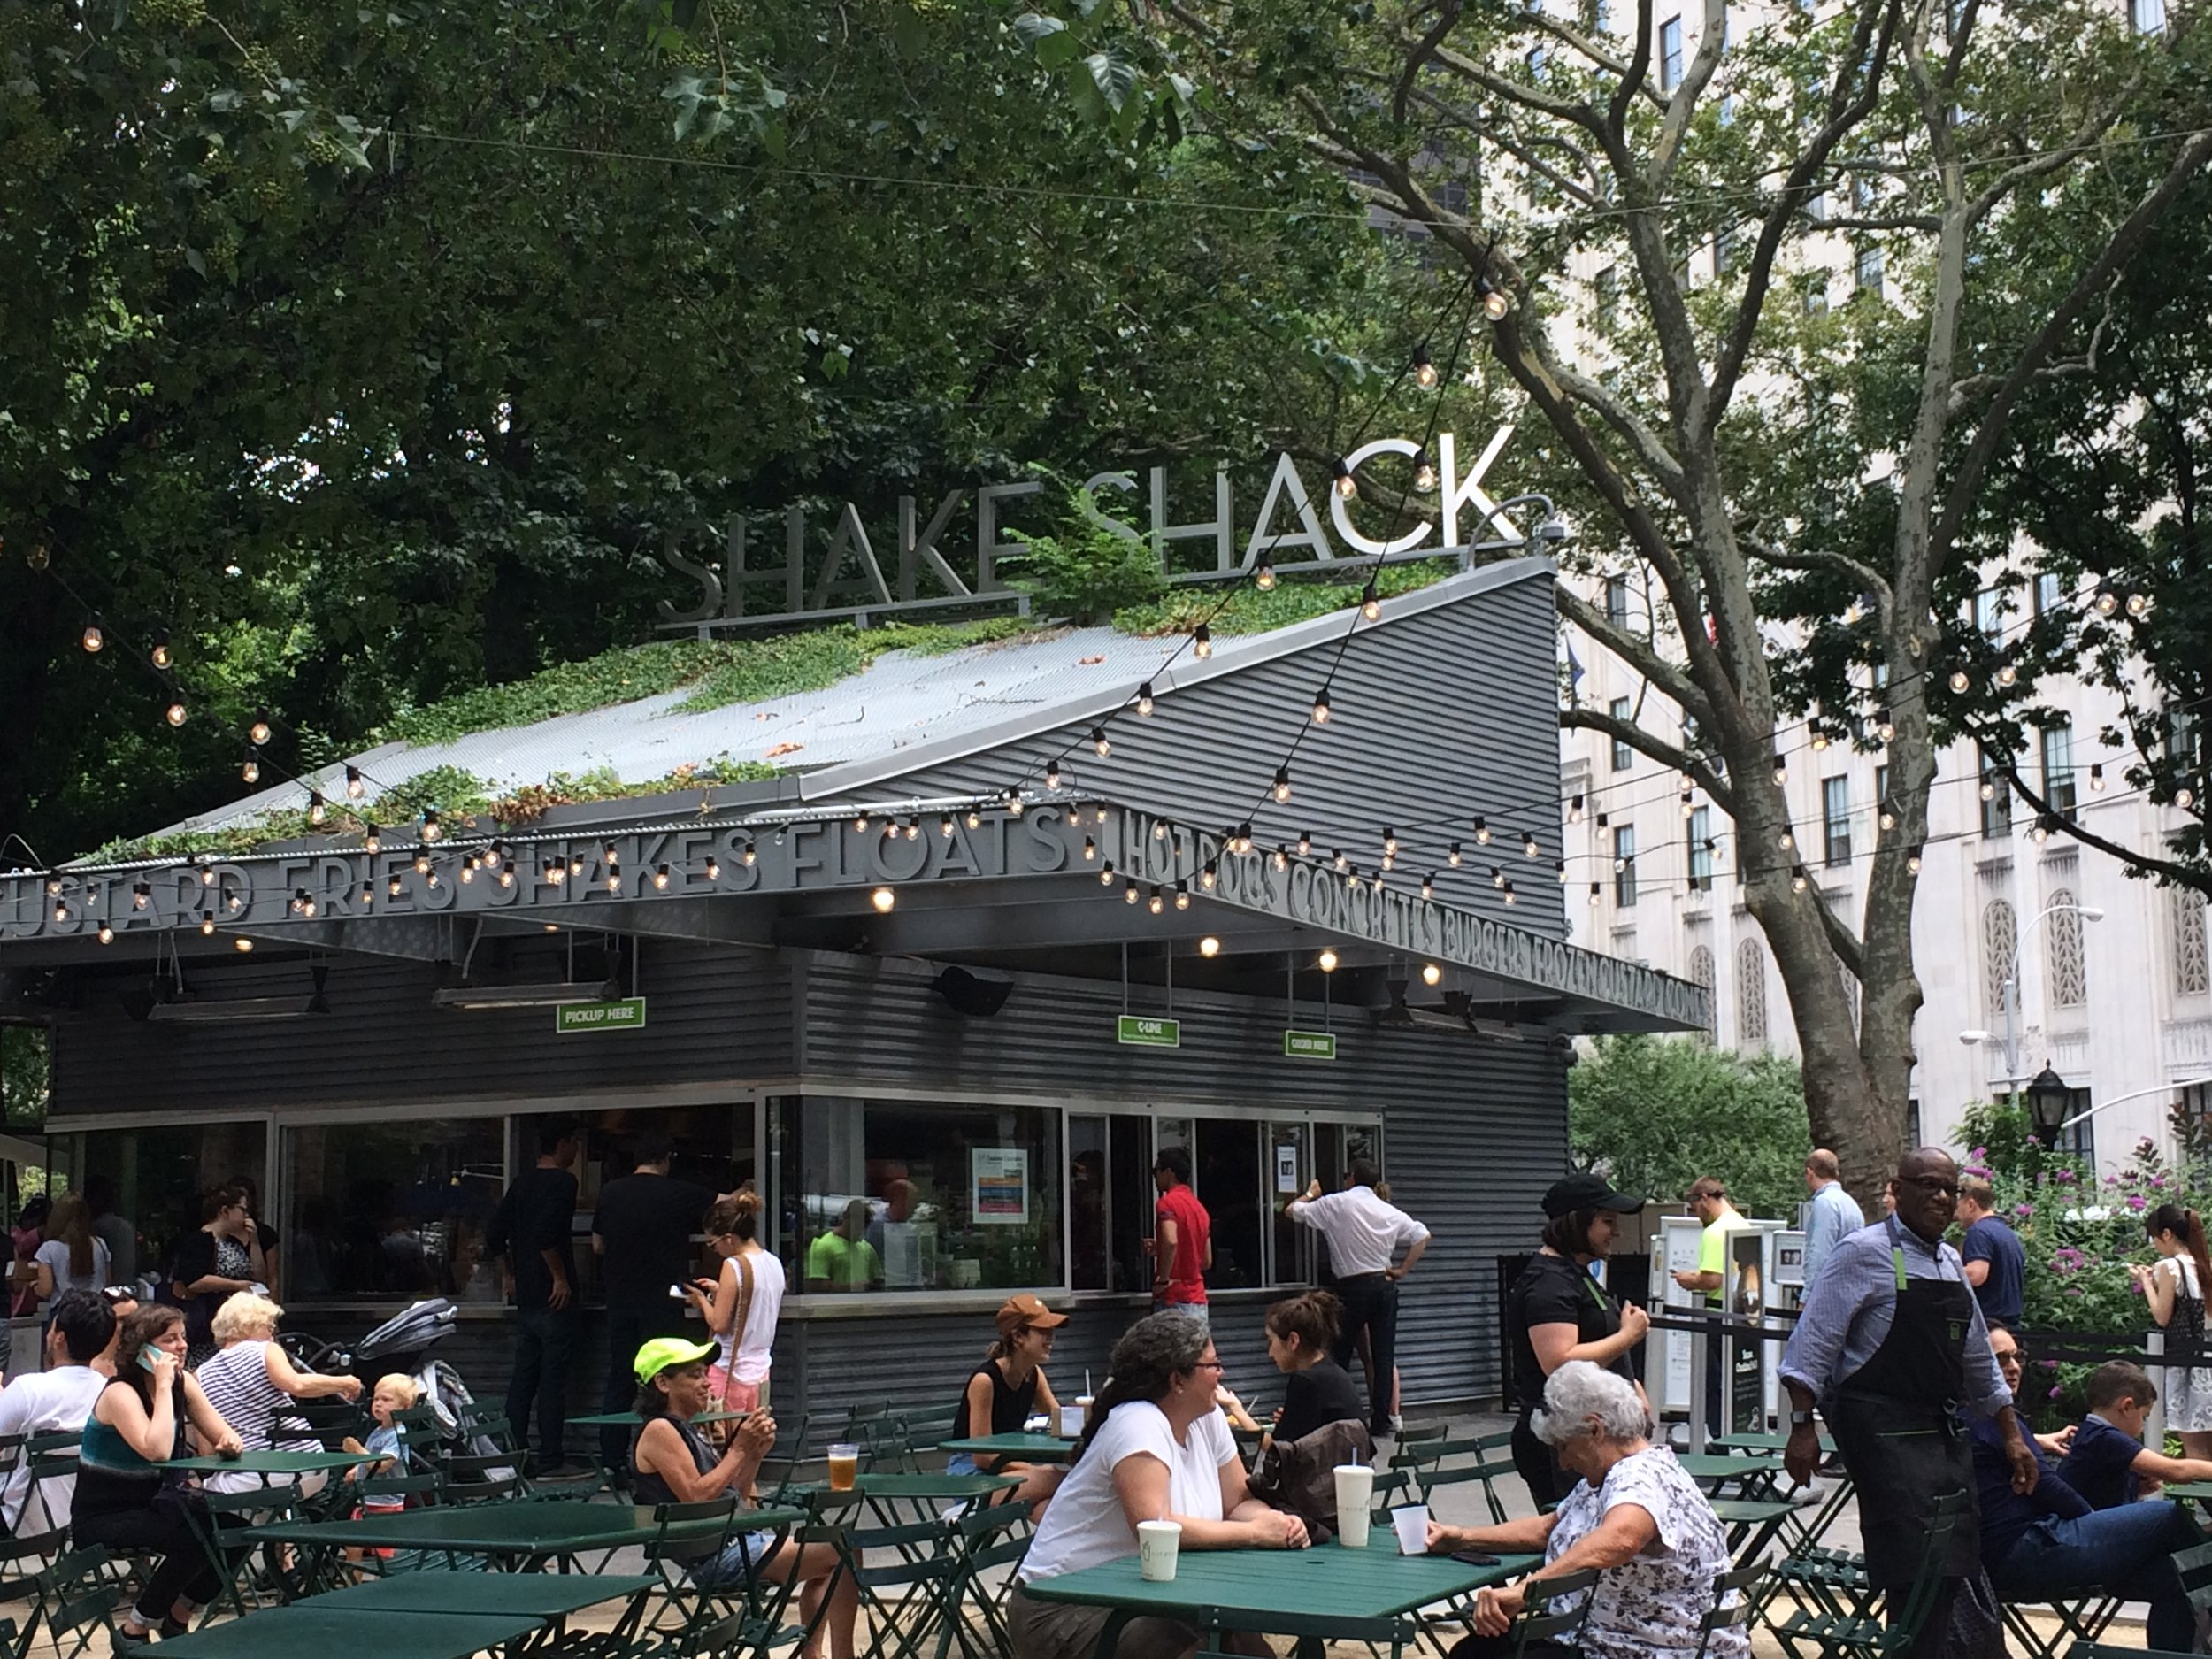 Al Roker at Shake Shack in New York City.